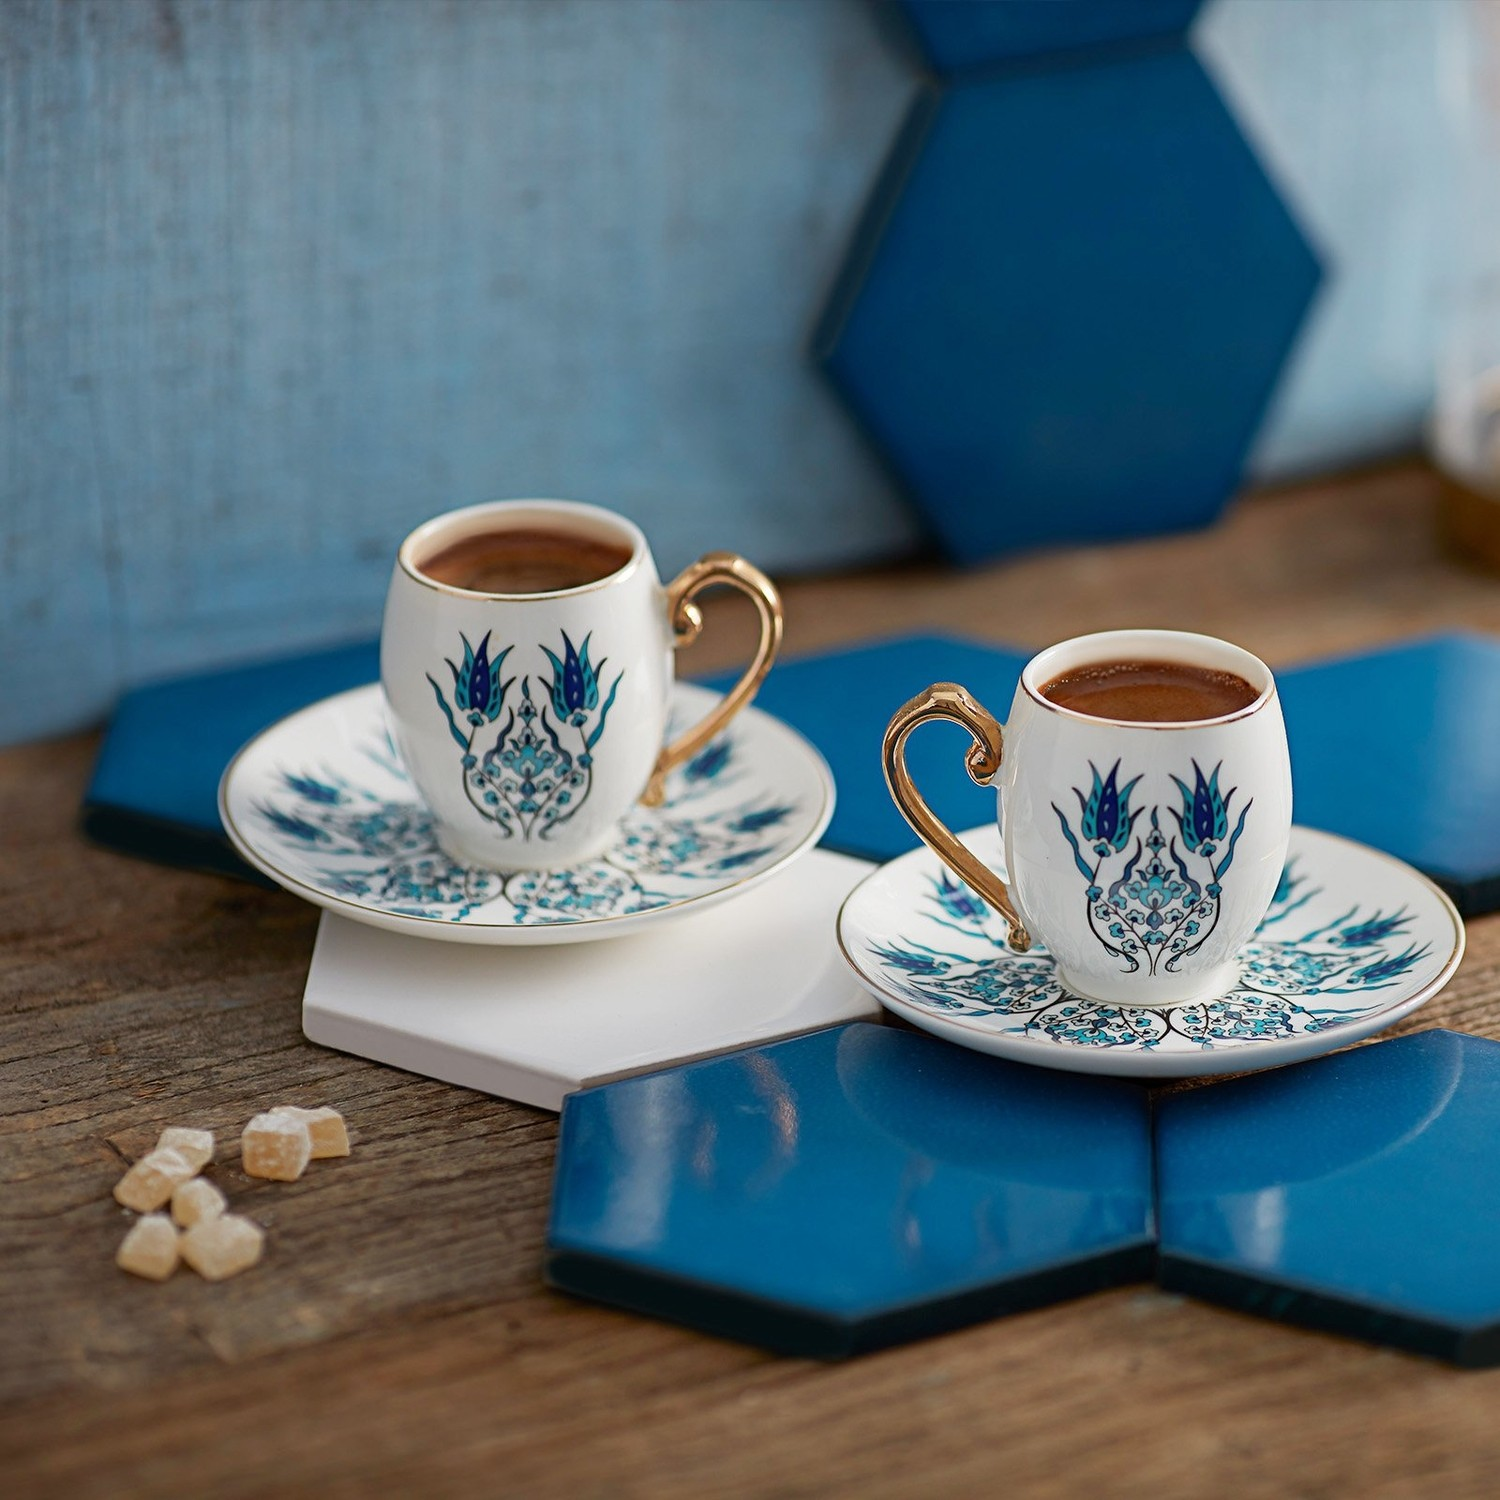 WONDERFUL MAGNIFICENT Karaca Iznik Coffee Cup Set for 2 Persons QUALITY FREE SHIPPING WITH BEVERAGES AND BEVERAGES  -